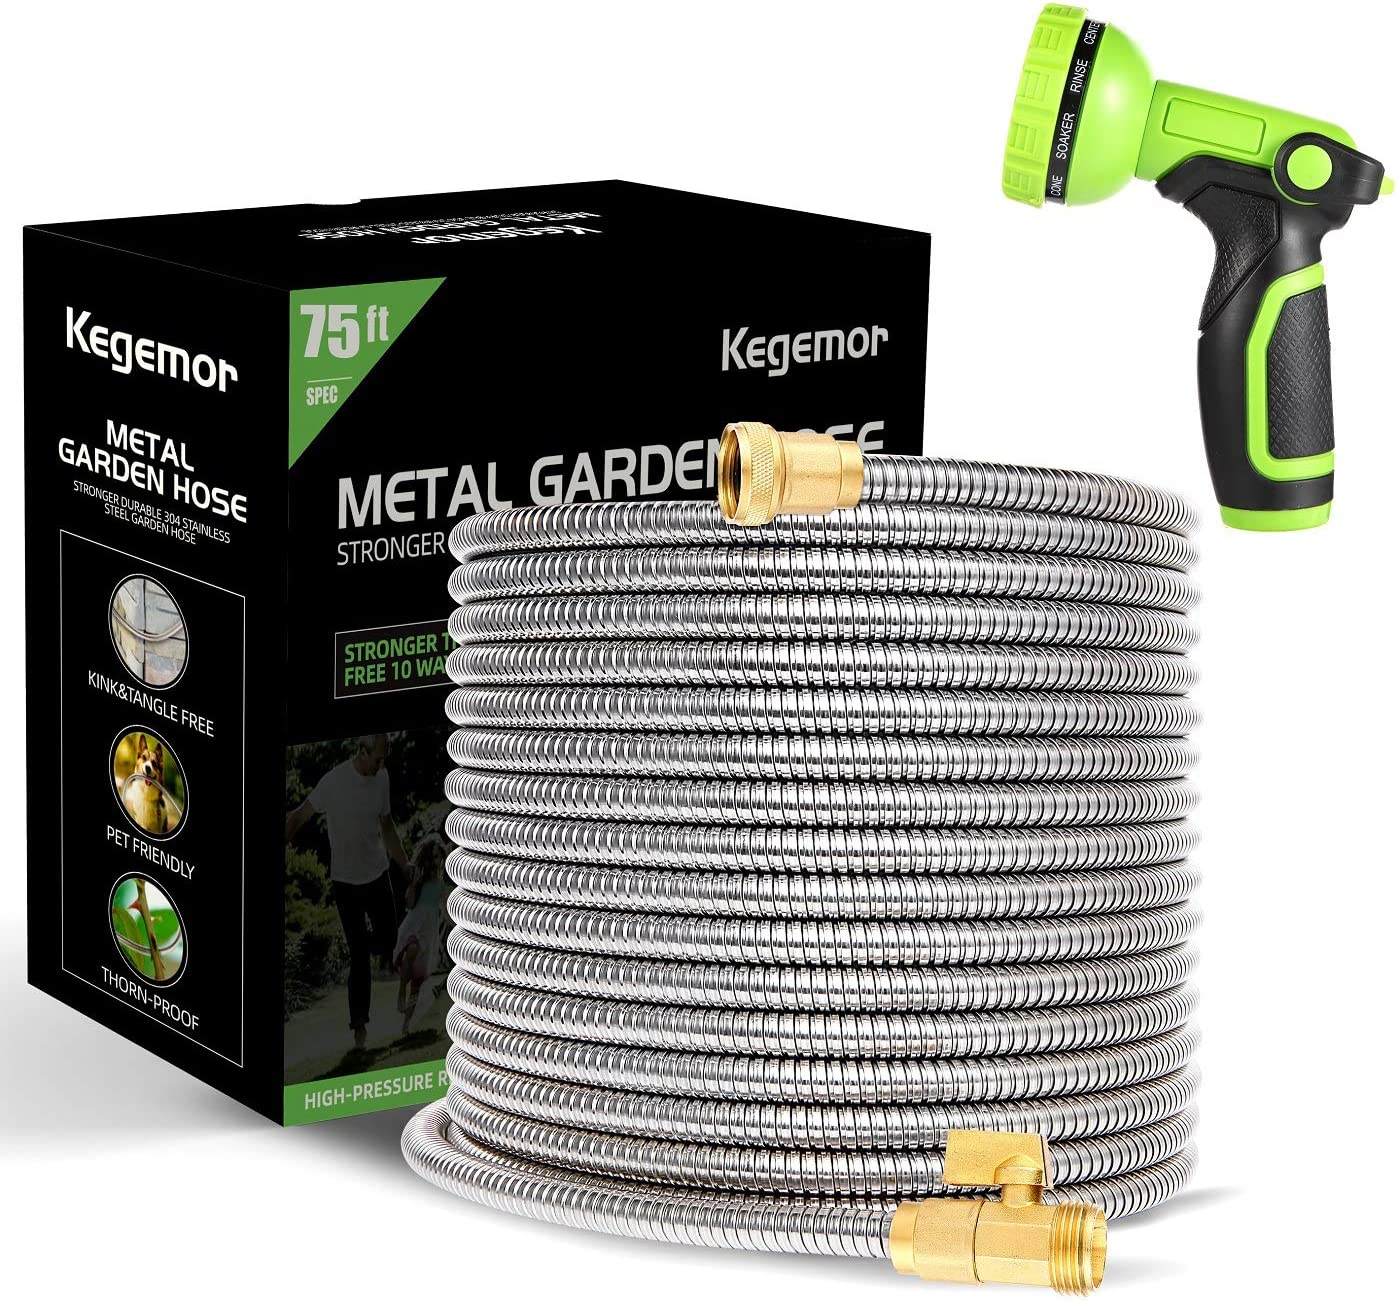 kegemor Garden Hose 75 ft-Metal Water Hose -Flexible Lightweight Outdoor Yard Strong Durable Heavy Duty 304 Stainless Steel Hose Pipe with 10-Way Nozzle, Solid 3/4